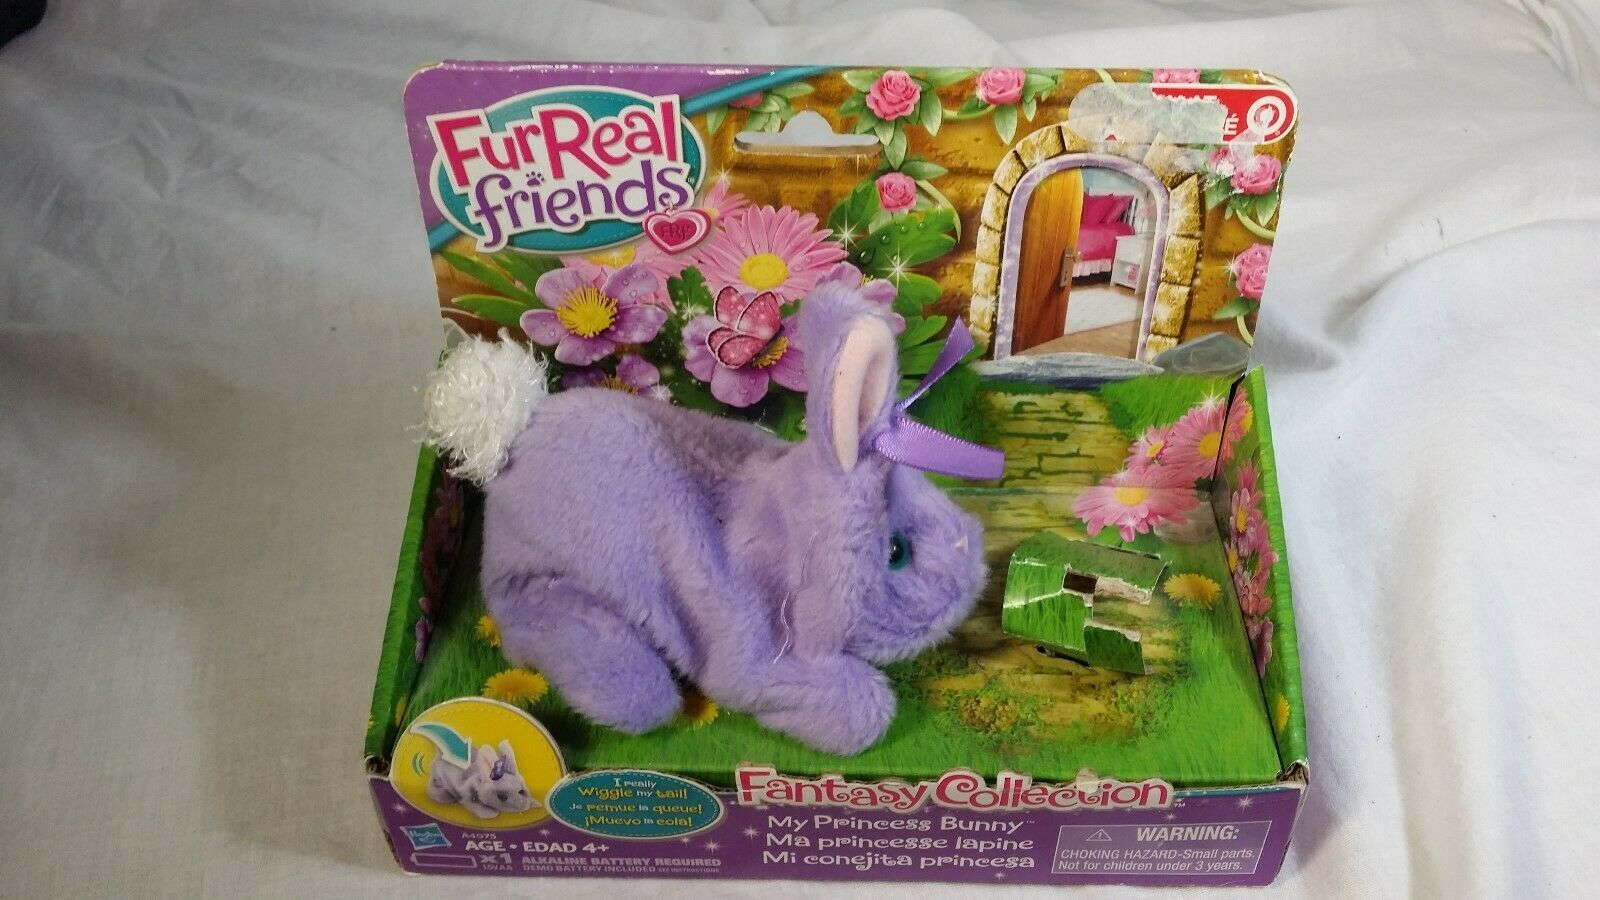 Fur Real Friends Fantasy Collection My Princess Bunny